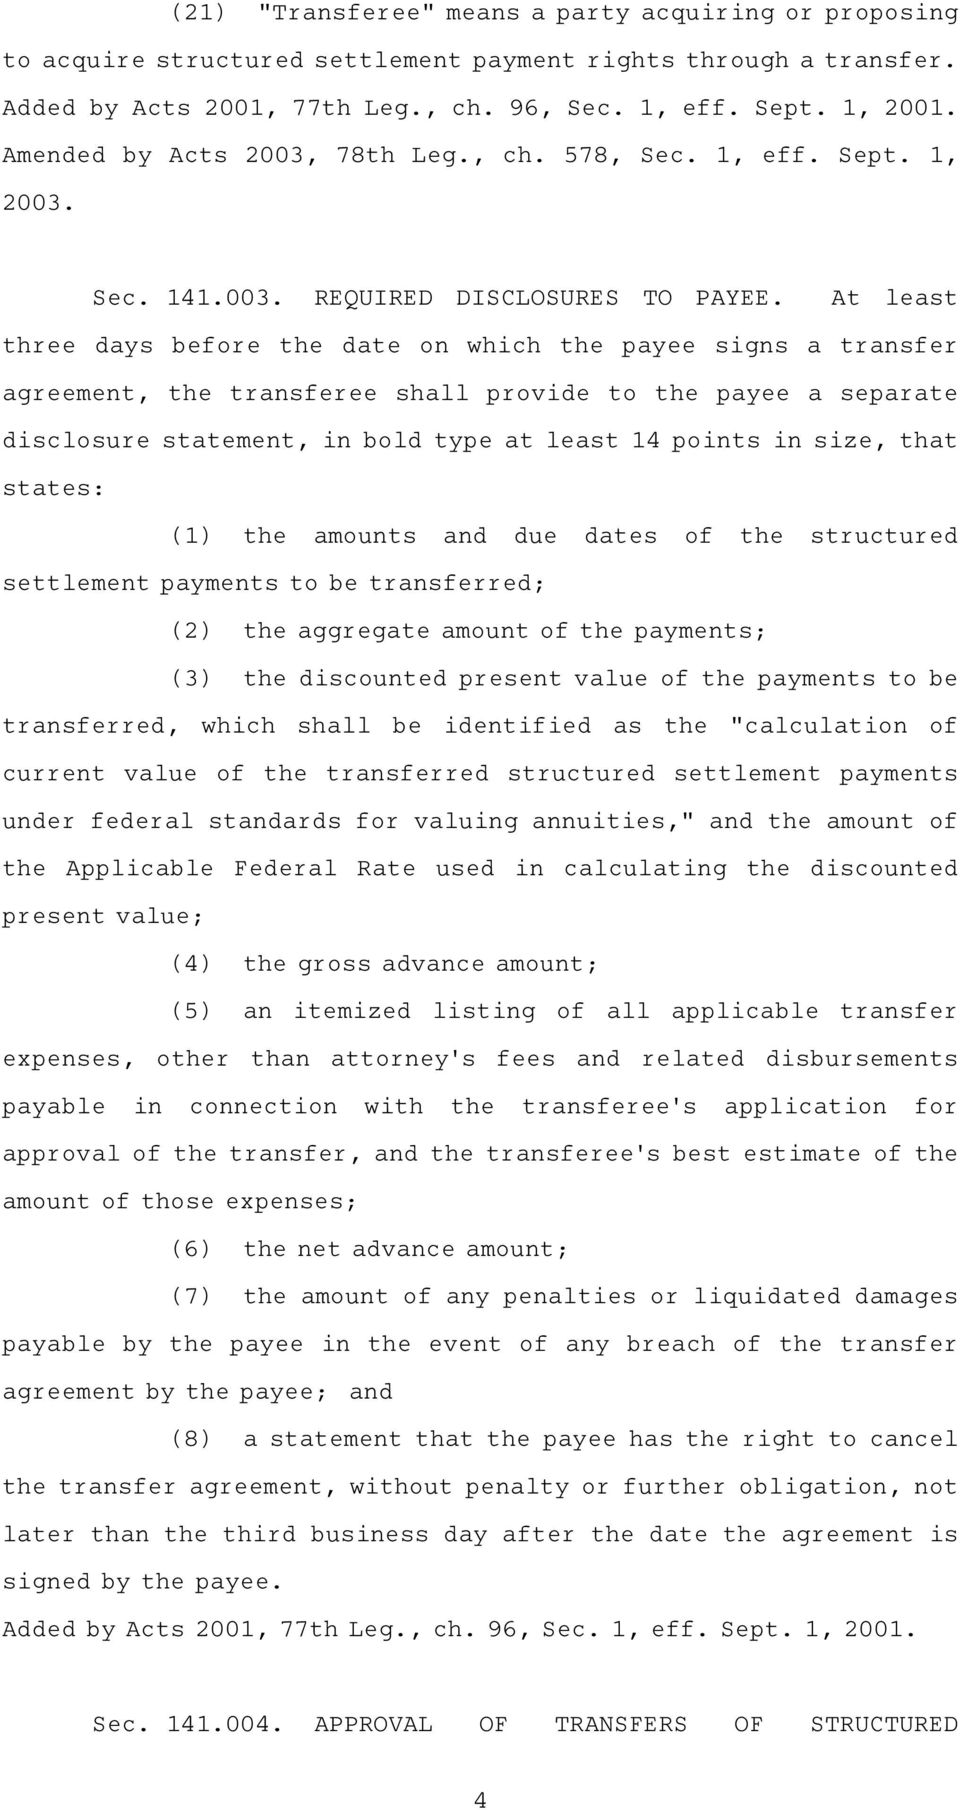 At least three days before the date on which the payee signs a transfer agreement, the transferee shall provide to the payee a separate disclosure statement, in bold type at least 14 points in size,